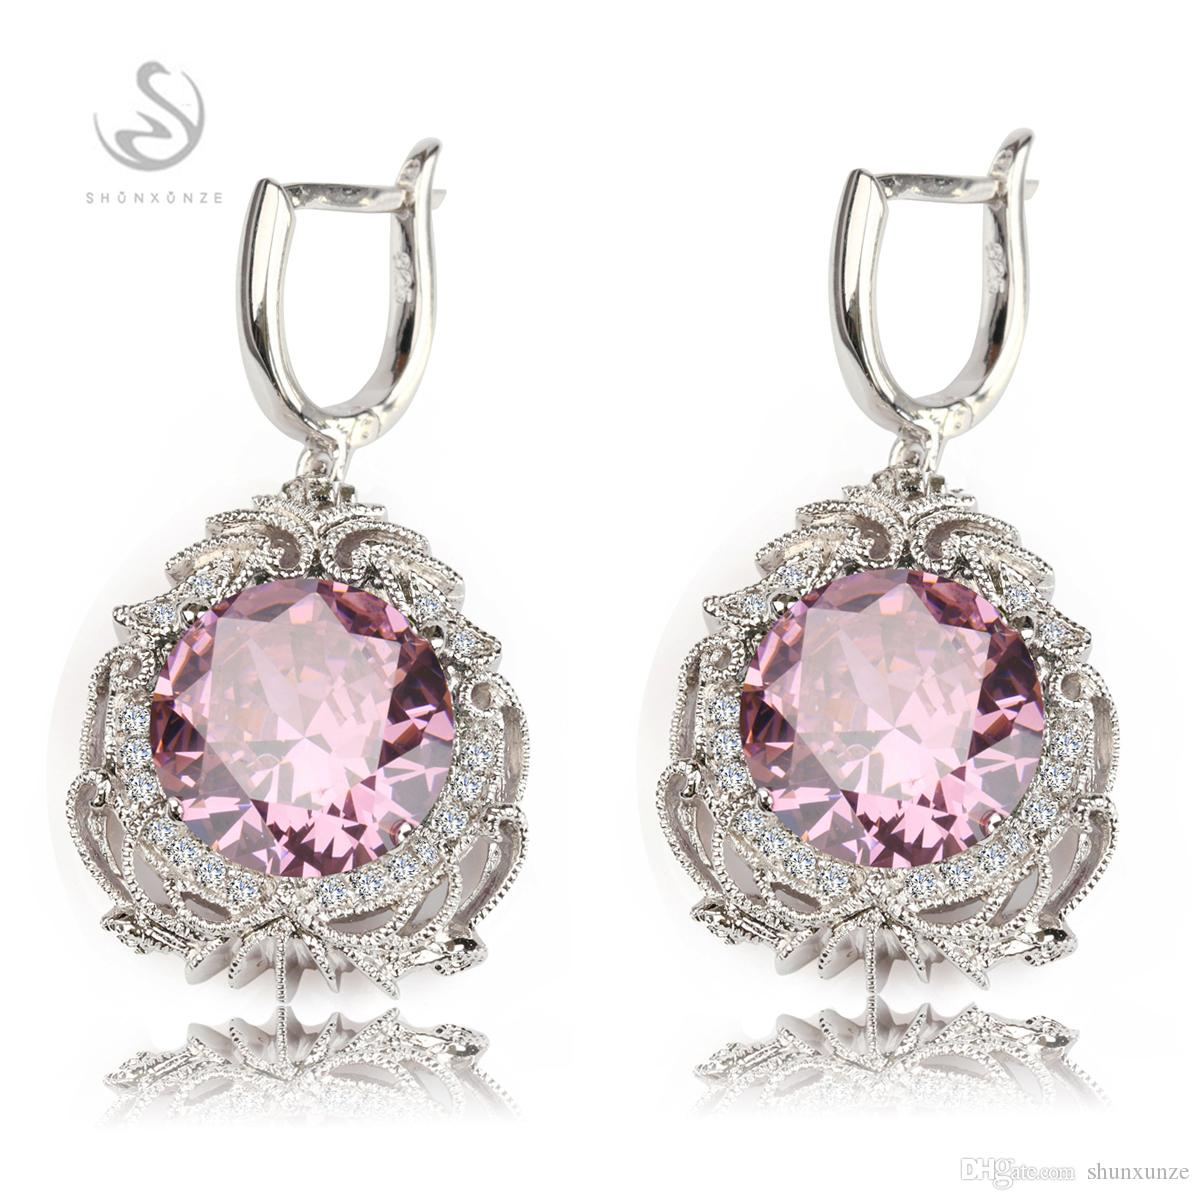 Fashion Classic Pink Cubic Zirconia Silver Plated Earrings R524 Productos de primera clase Recommend Promotion Favorite Los más vendidos